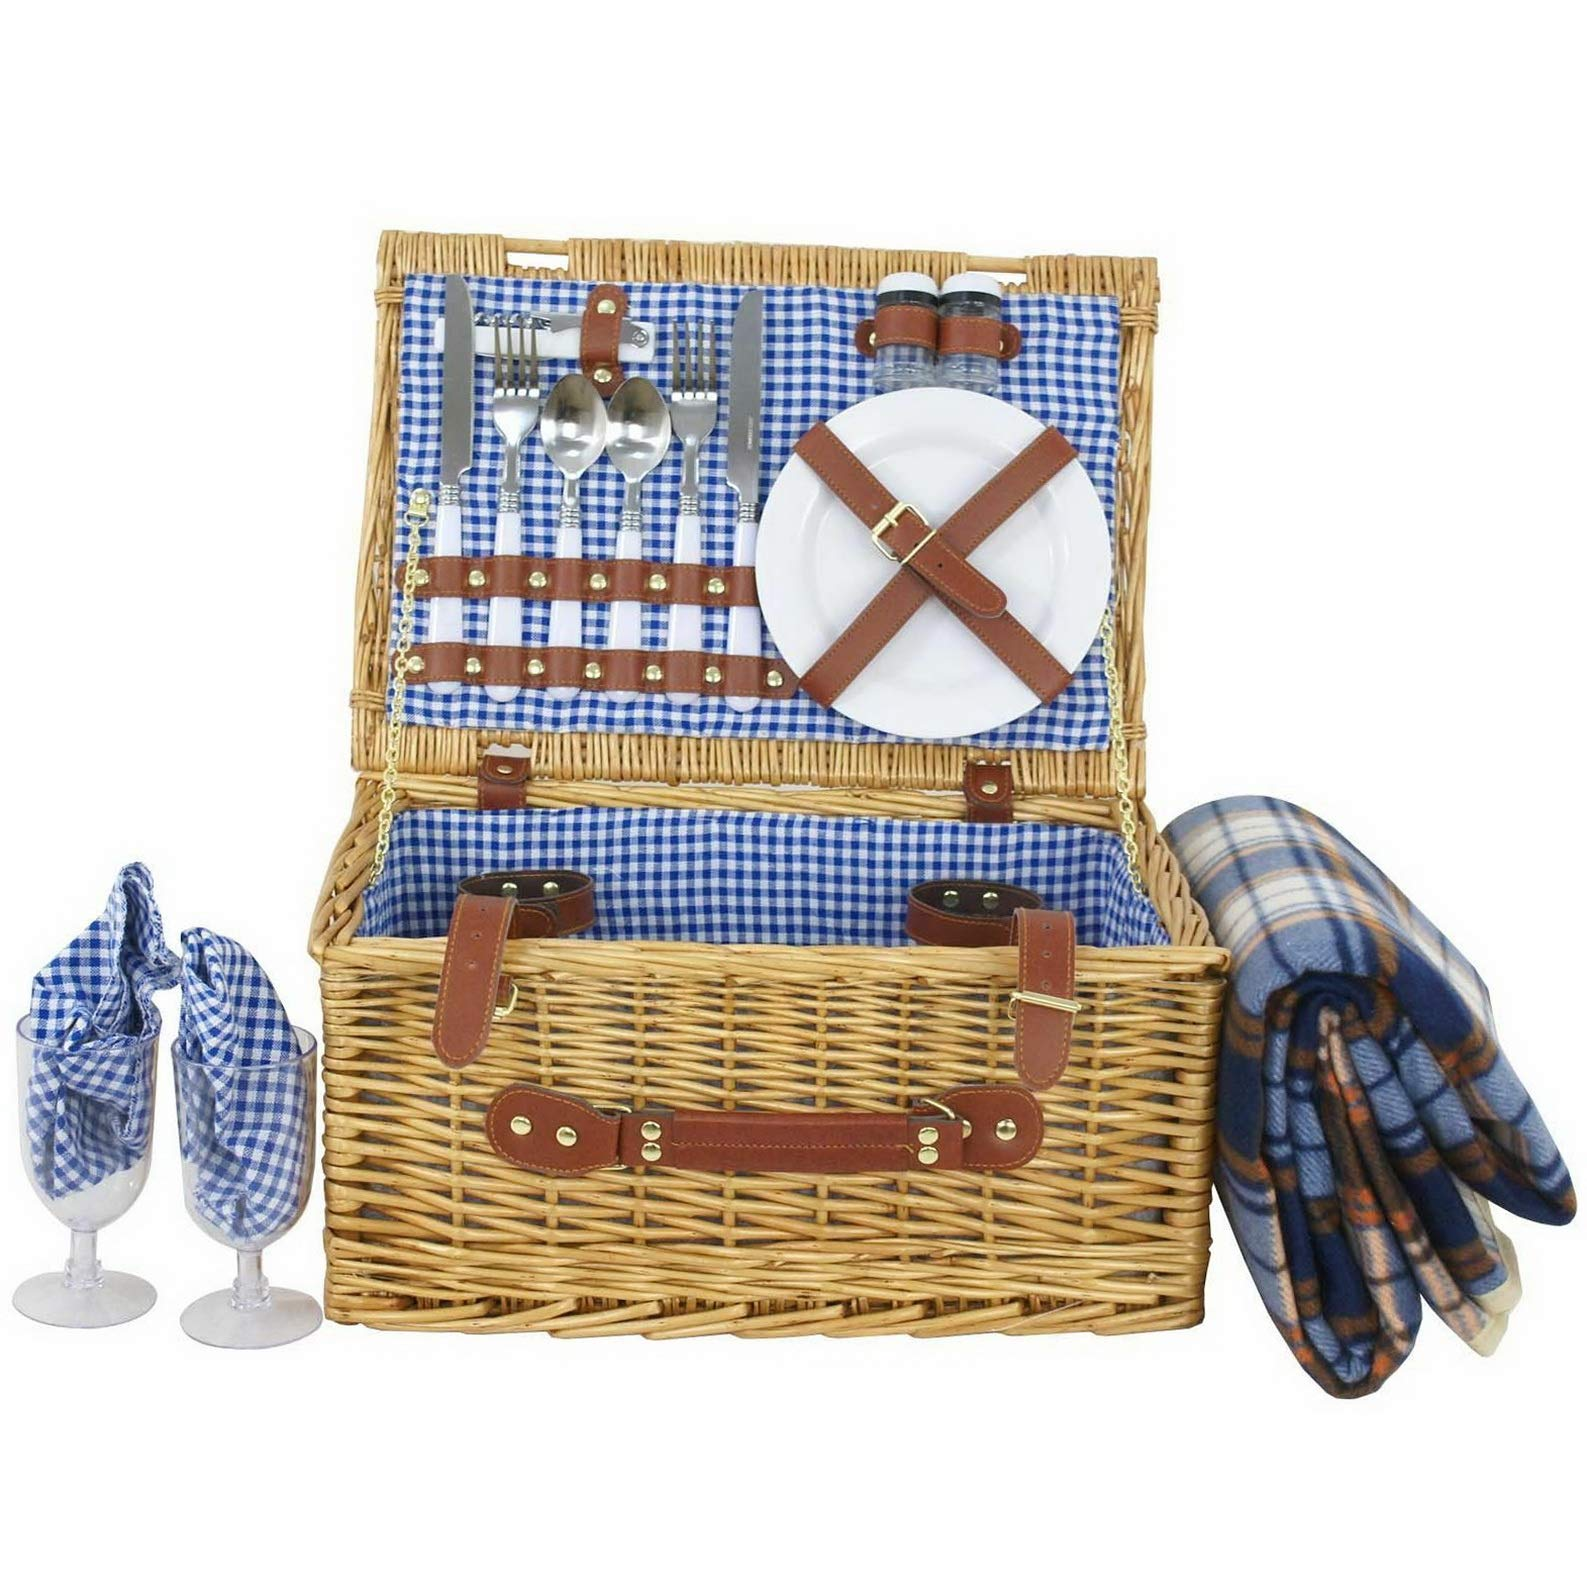 Mikash 2/4 Person Wicker Picnic Basket Hamper Set with Flatware and Wine Glasses | Model PCNCST - 698 |